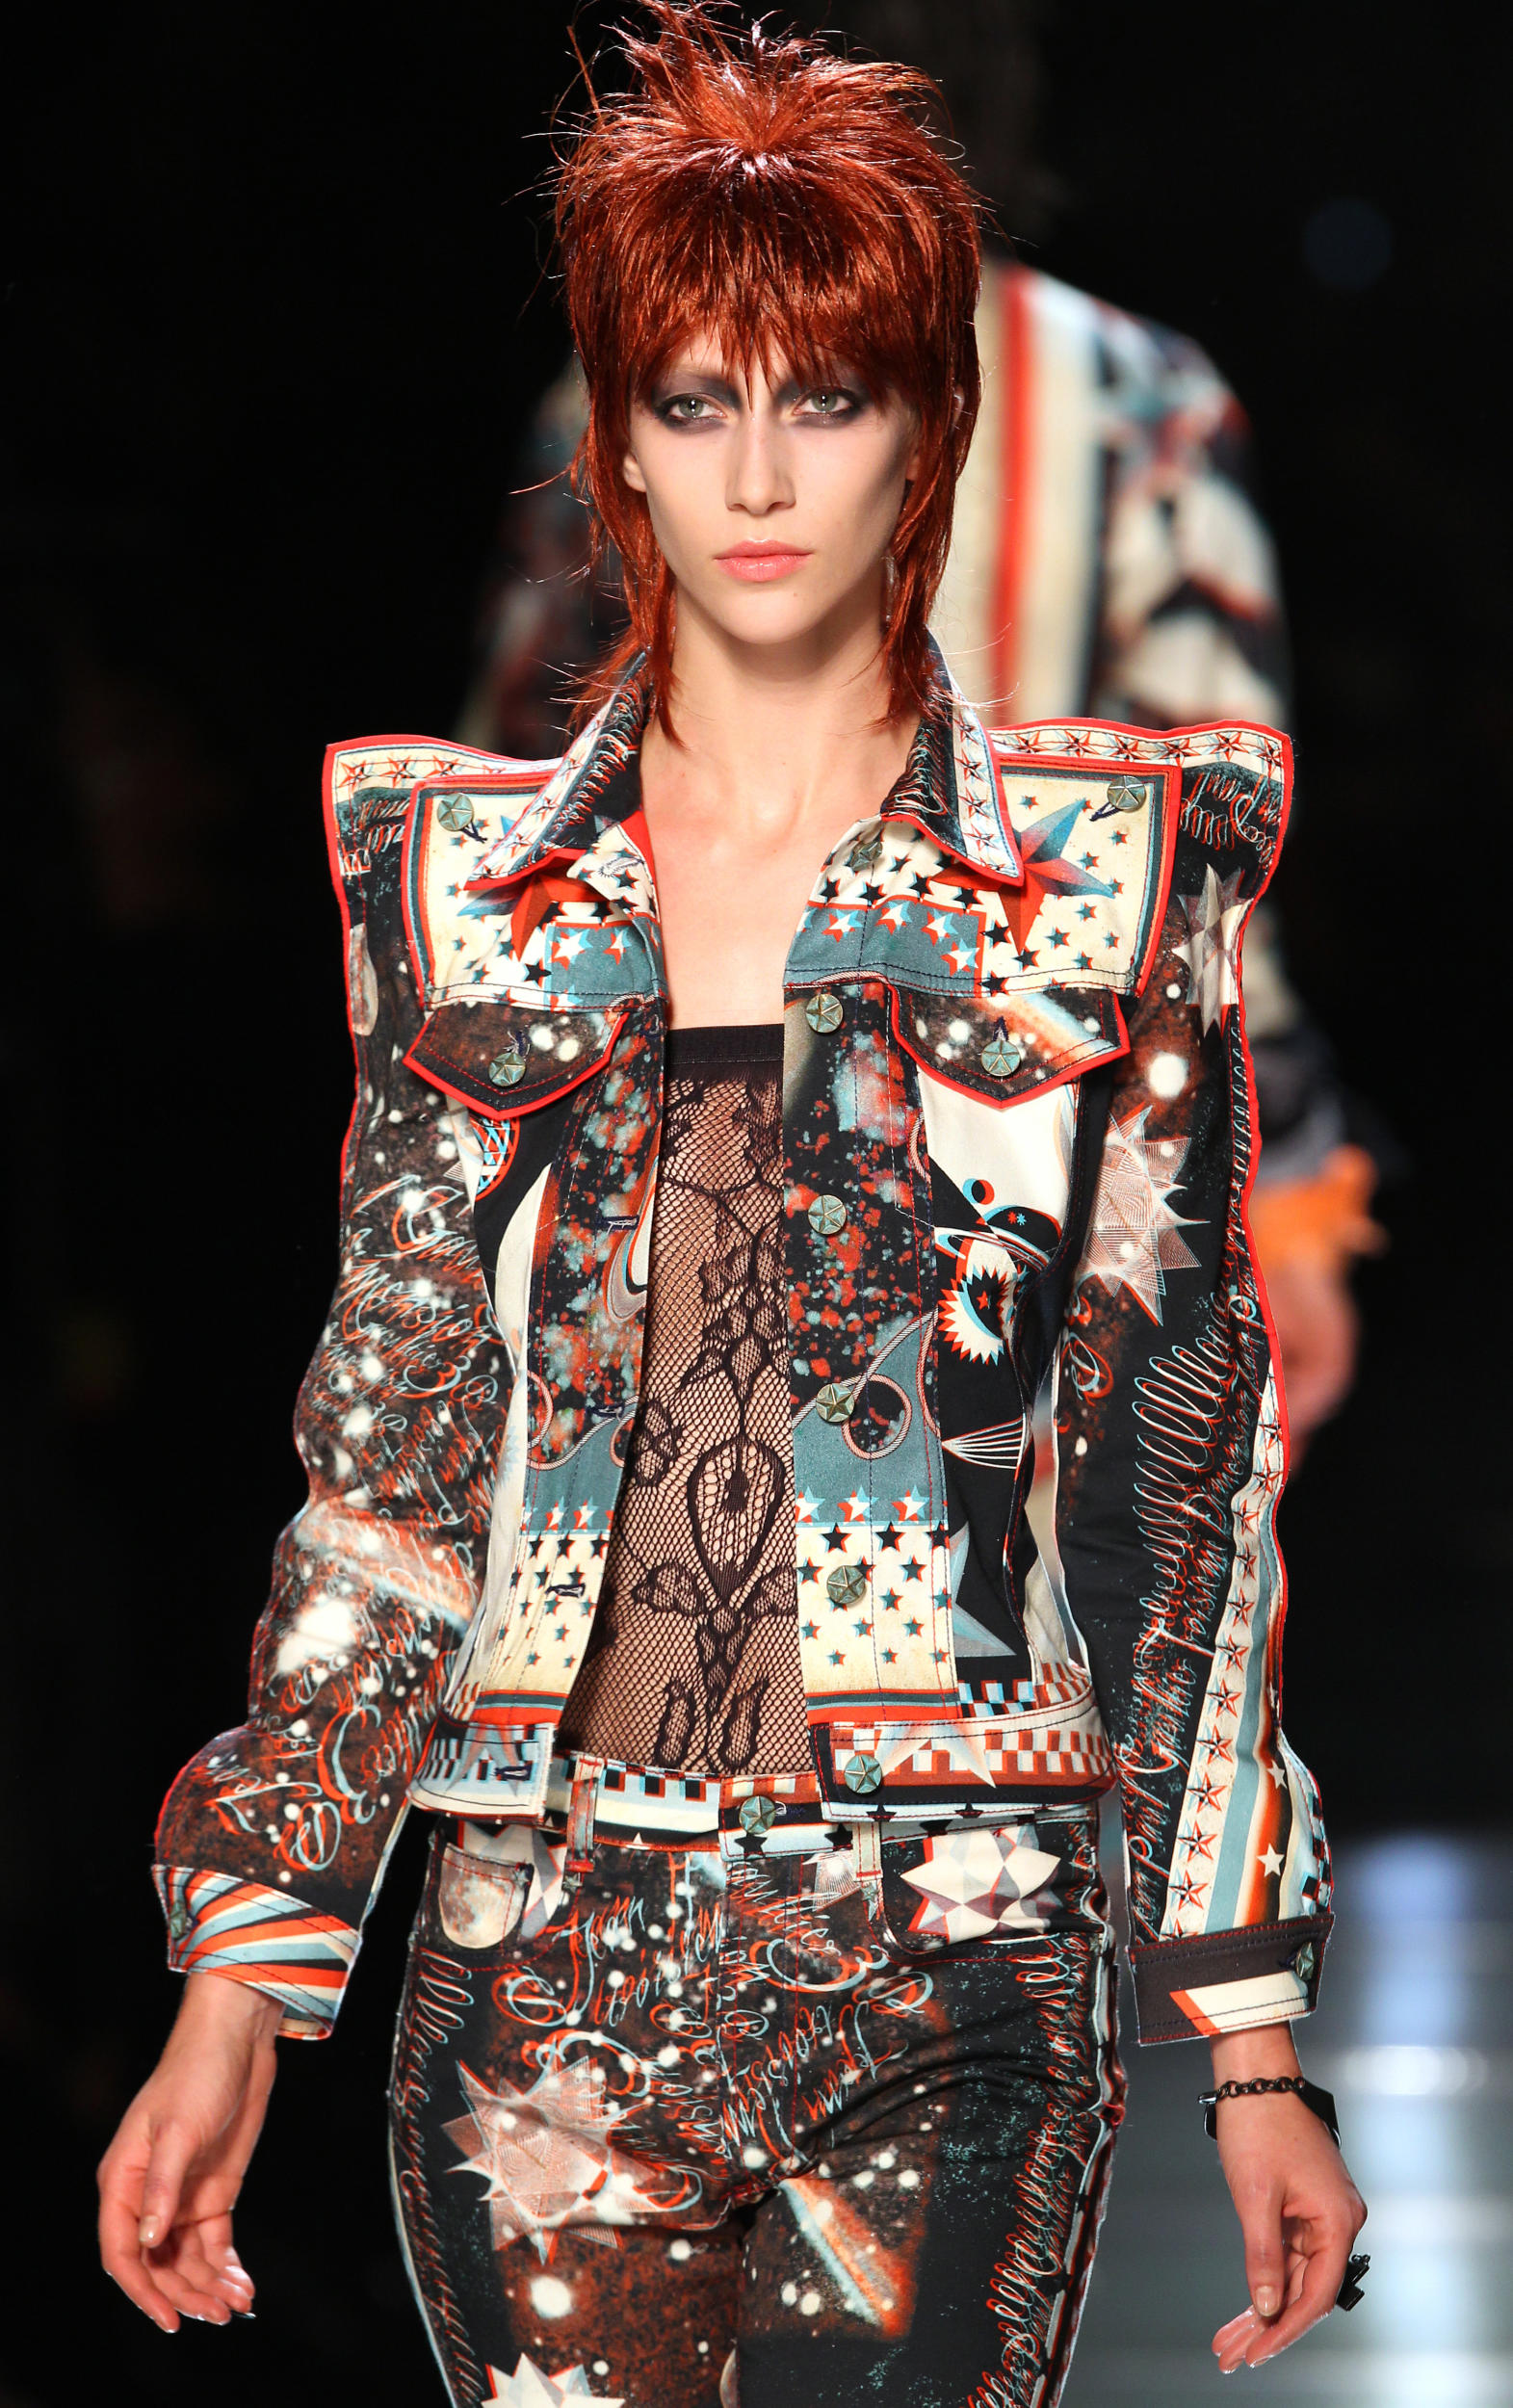 David Bowie: How The Musical Icon Inspired Miu Miu